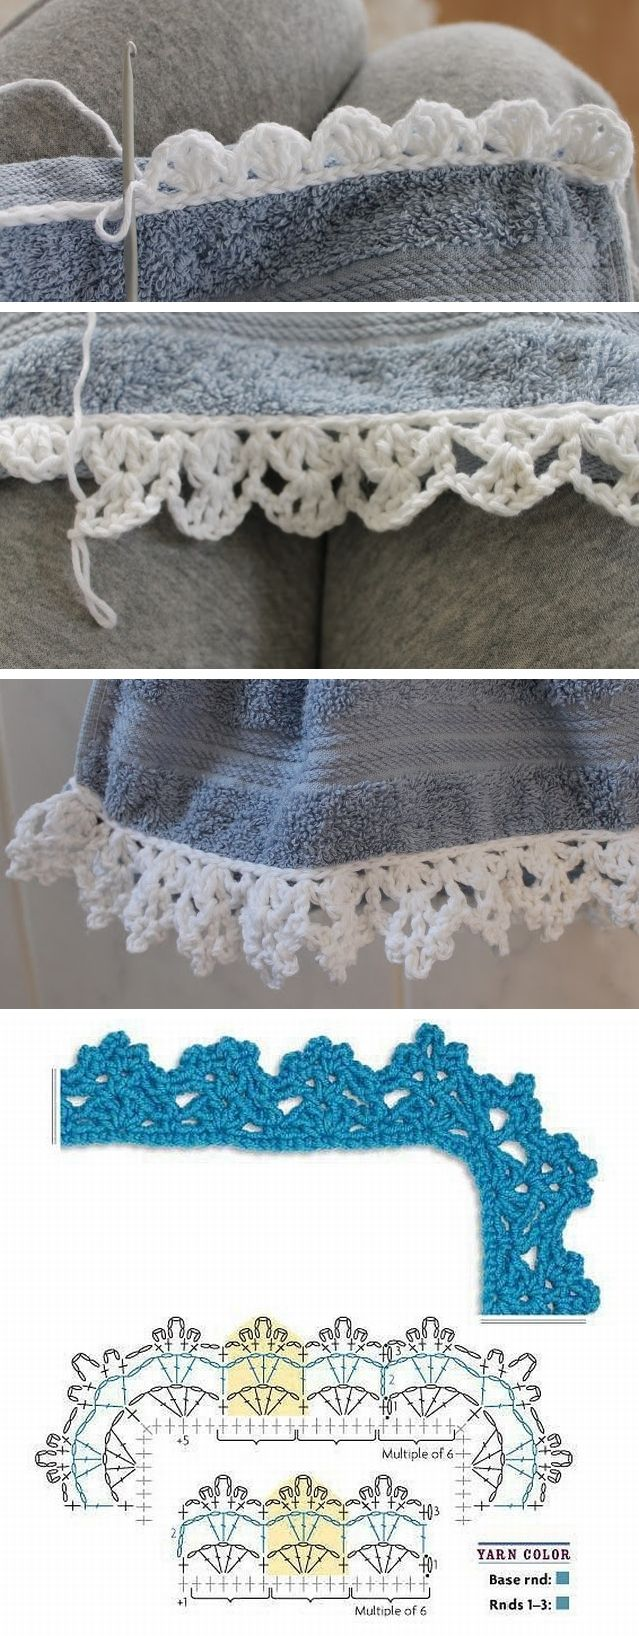 20 crochet free edging patterns you should know crochet lace edging pattern diagram trish w httpwww bankloansurffo Image collections